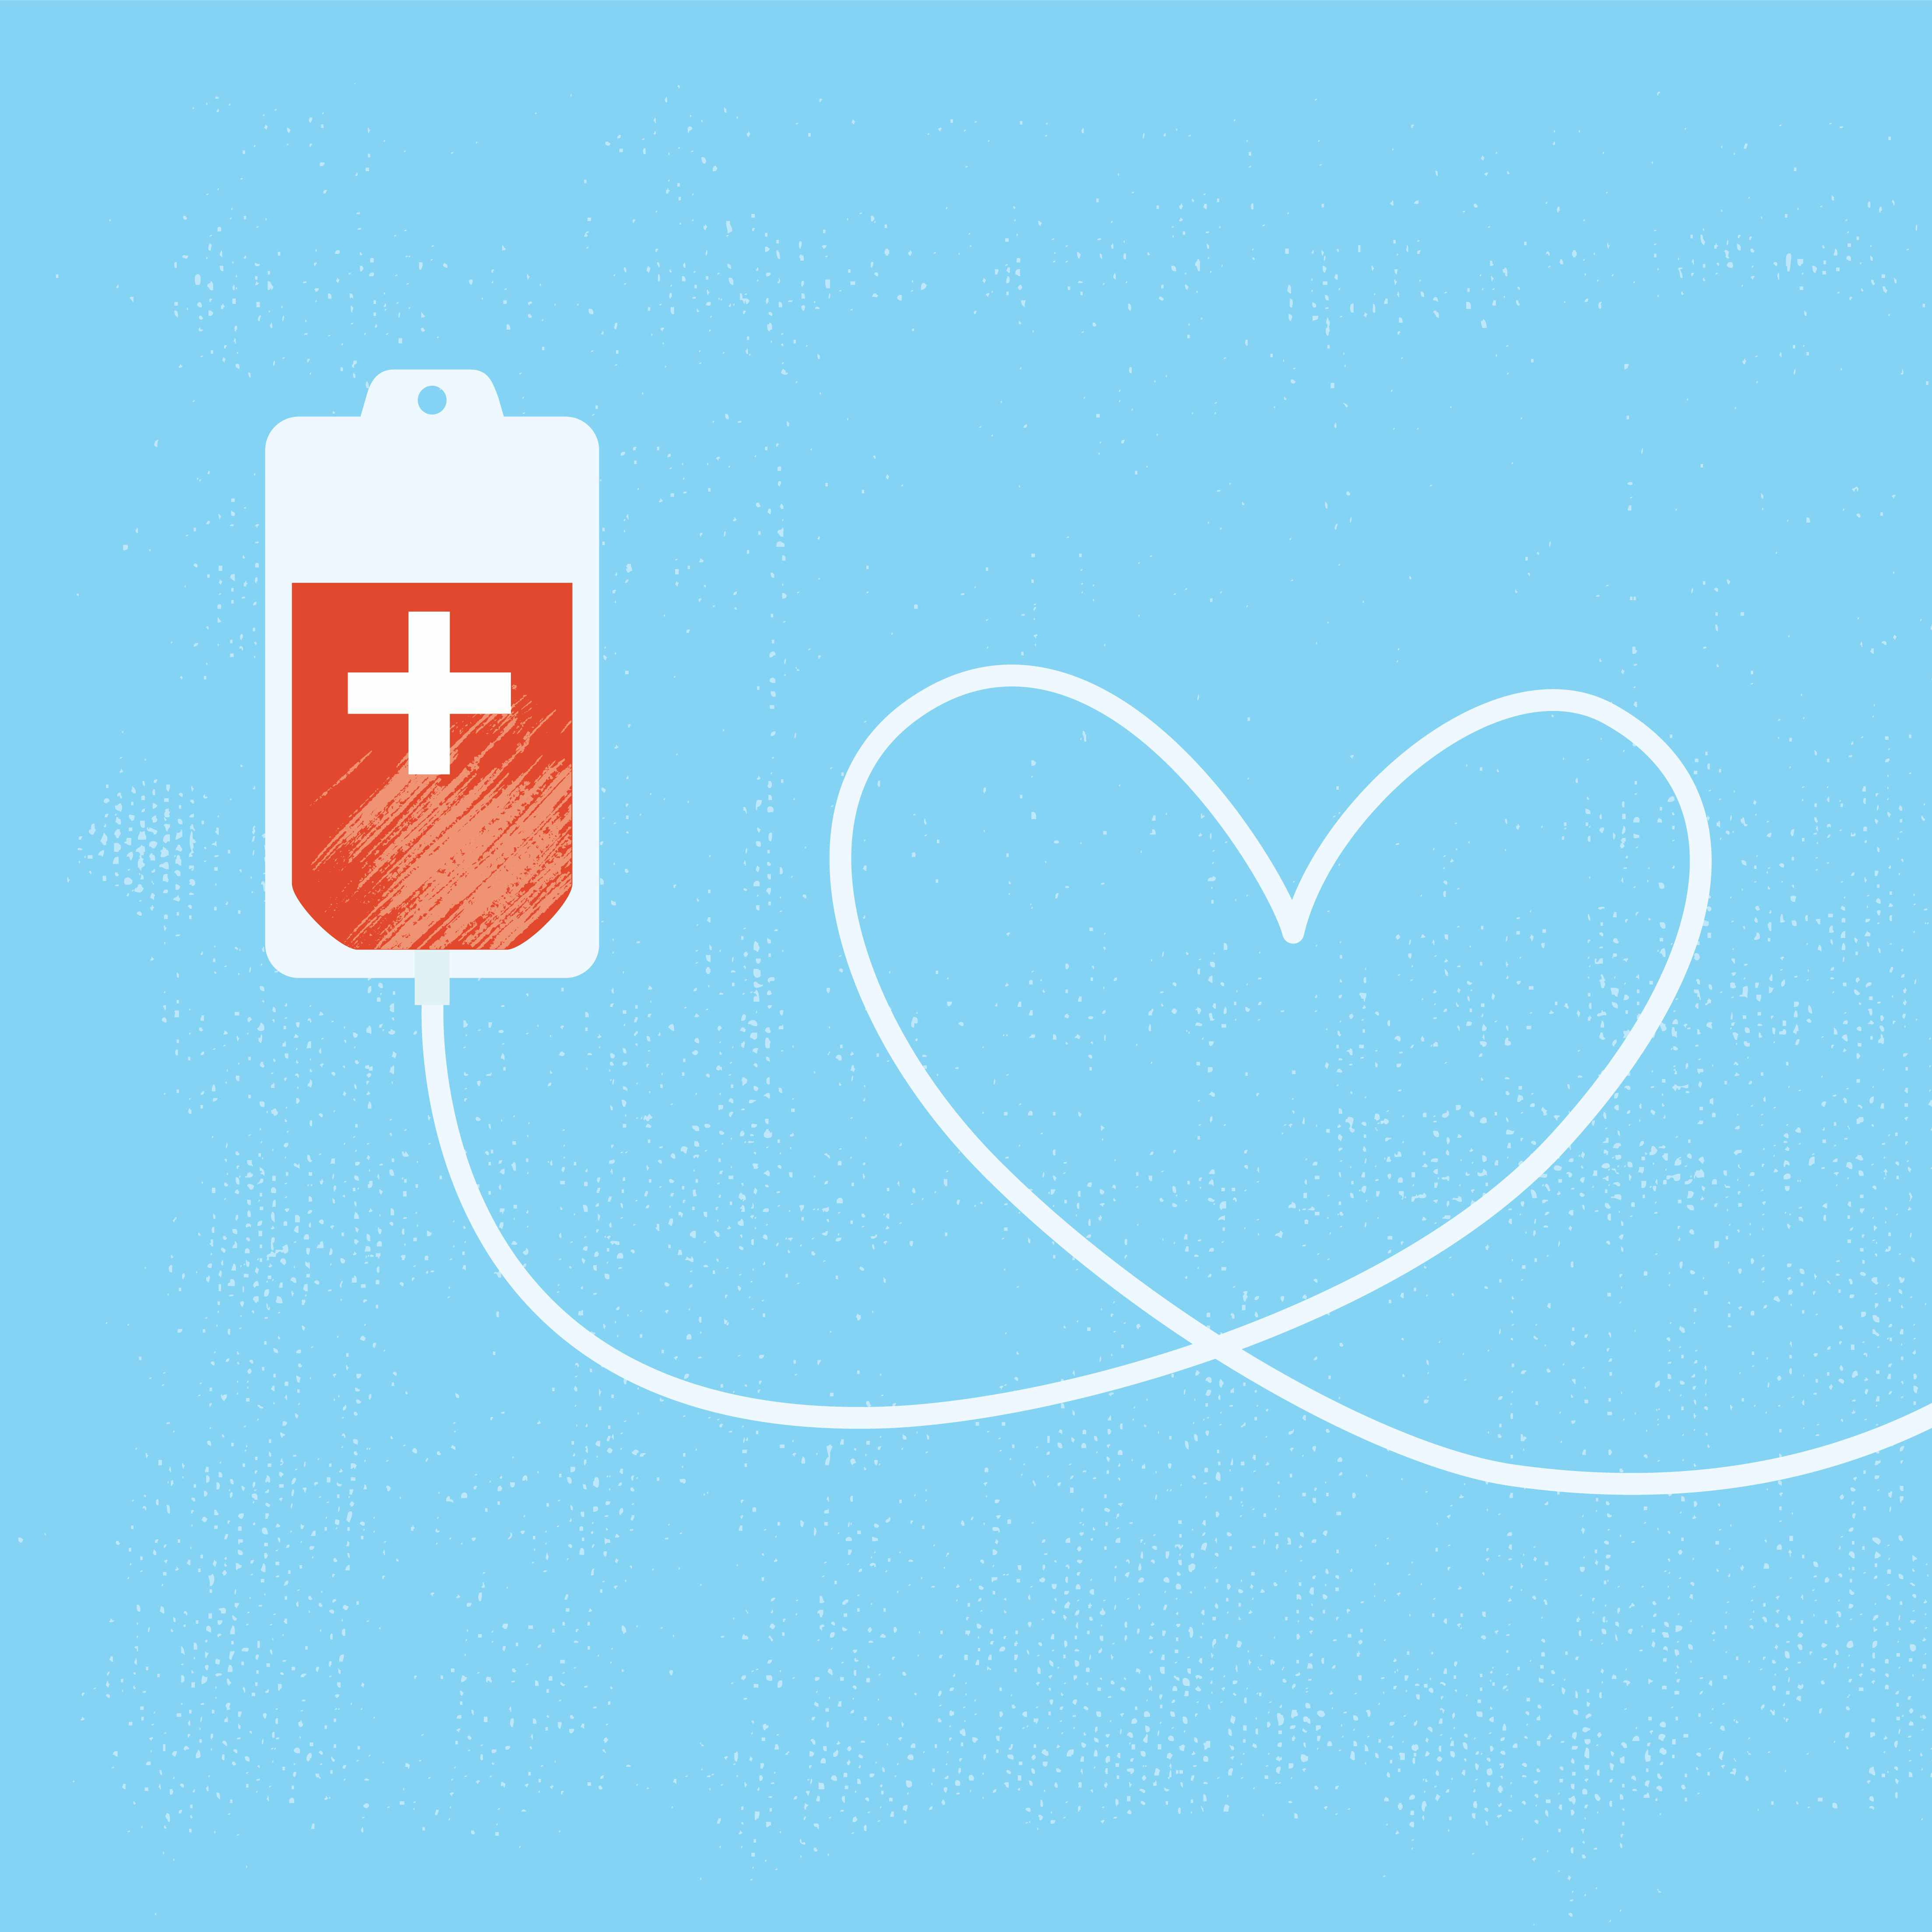 a graphic illustration of a bag of donated blood, with the tubing forming a valentine heart